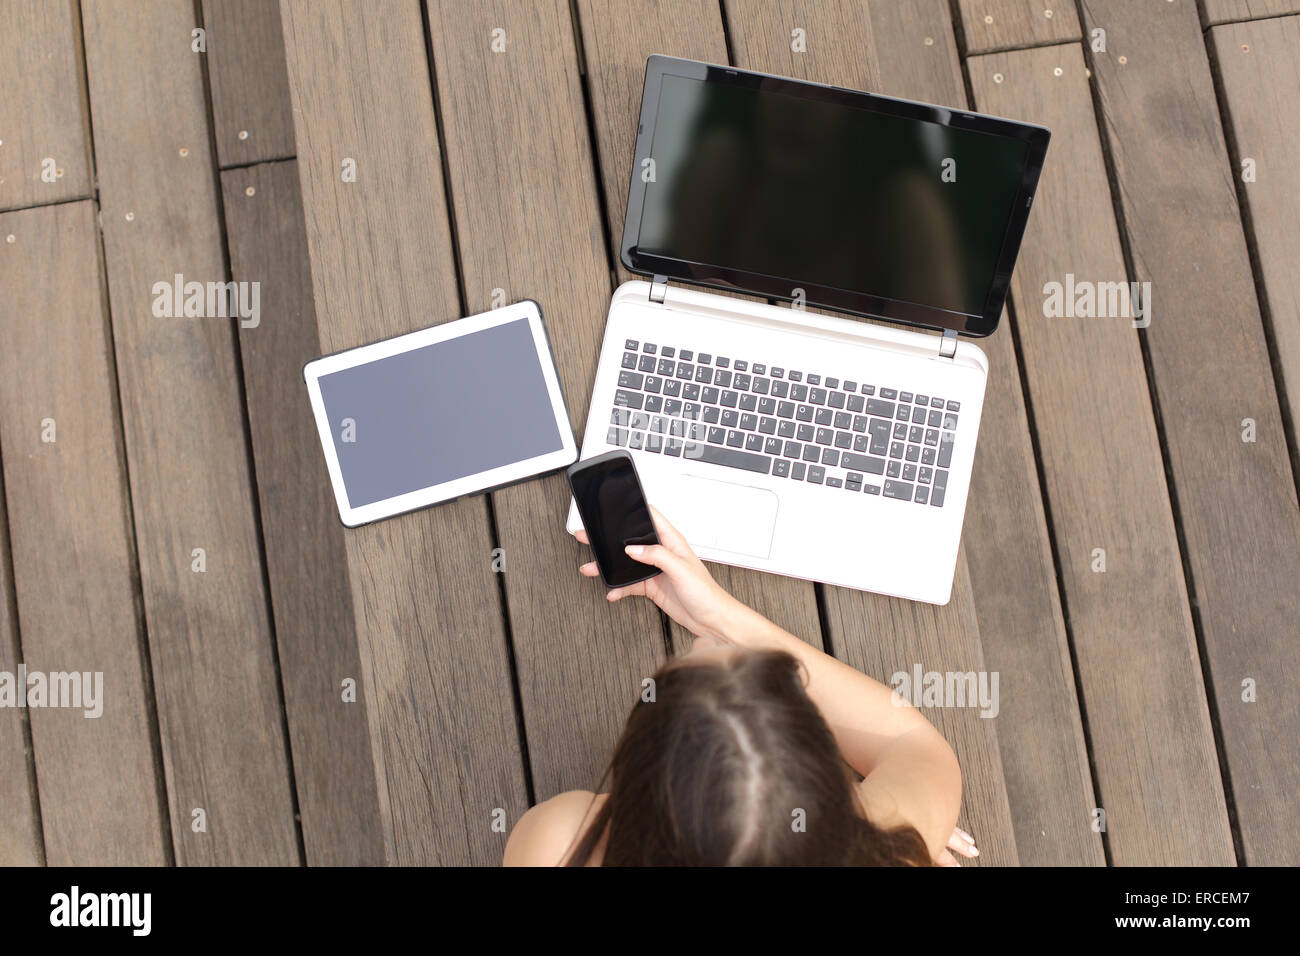 Woman using multiple devices phone laptop and tablet lying in a wood bench in a park - Stock Image